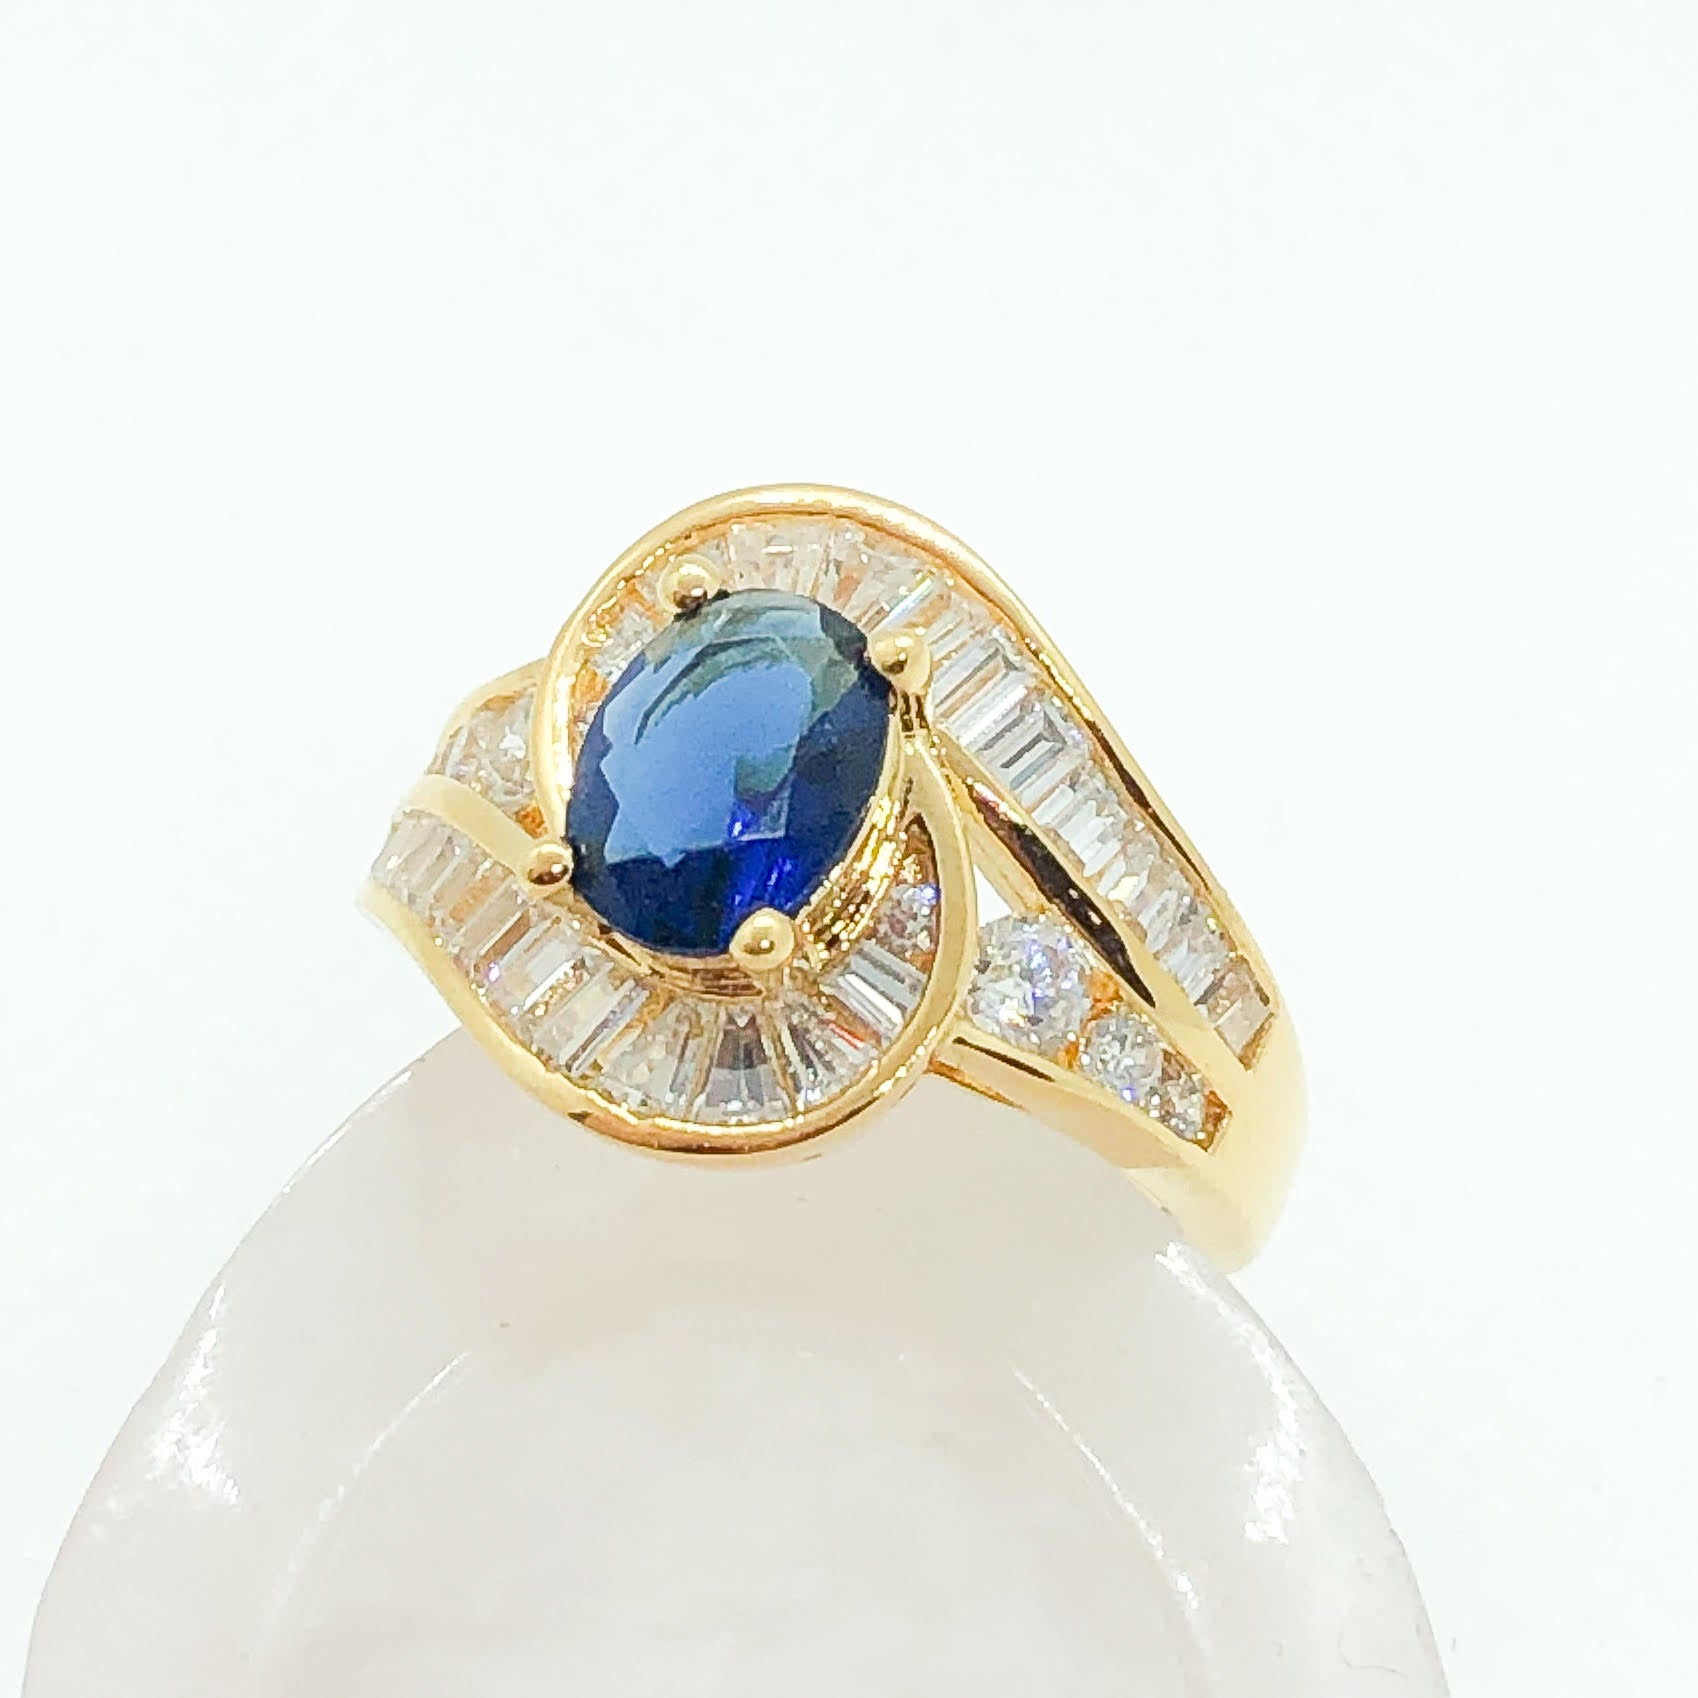 ID:R7893 Women Jewelry 18K Yellow Gold GF Charming Classic Ring Oval Sapphire Solitaire With Clear Stones Accent